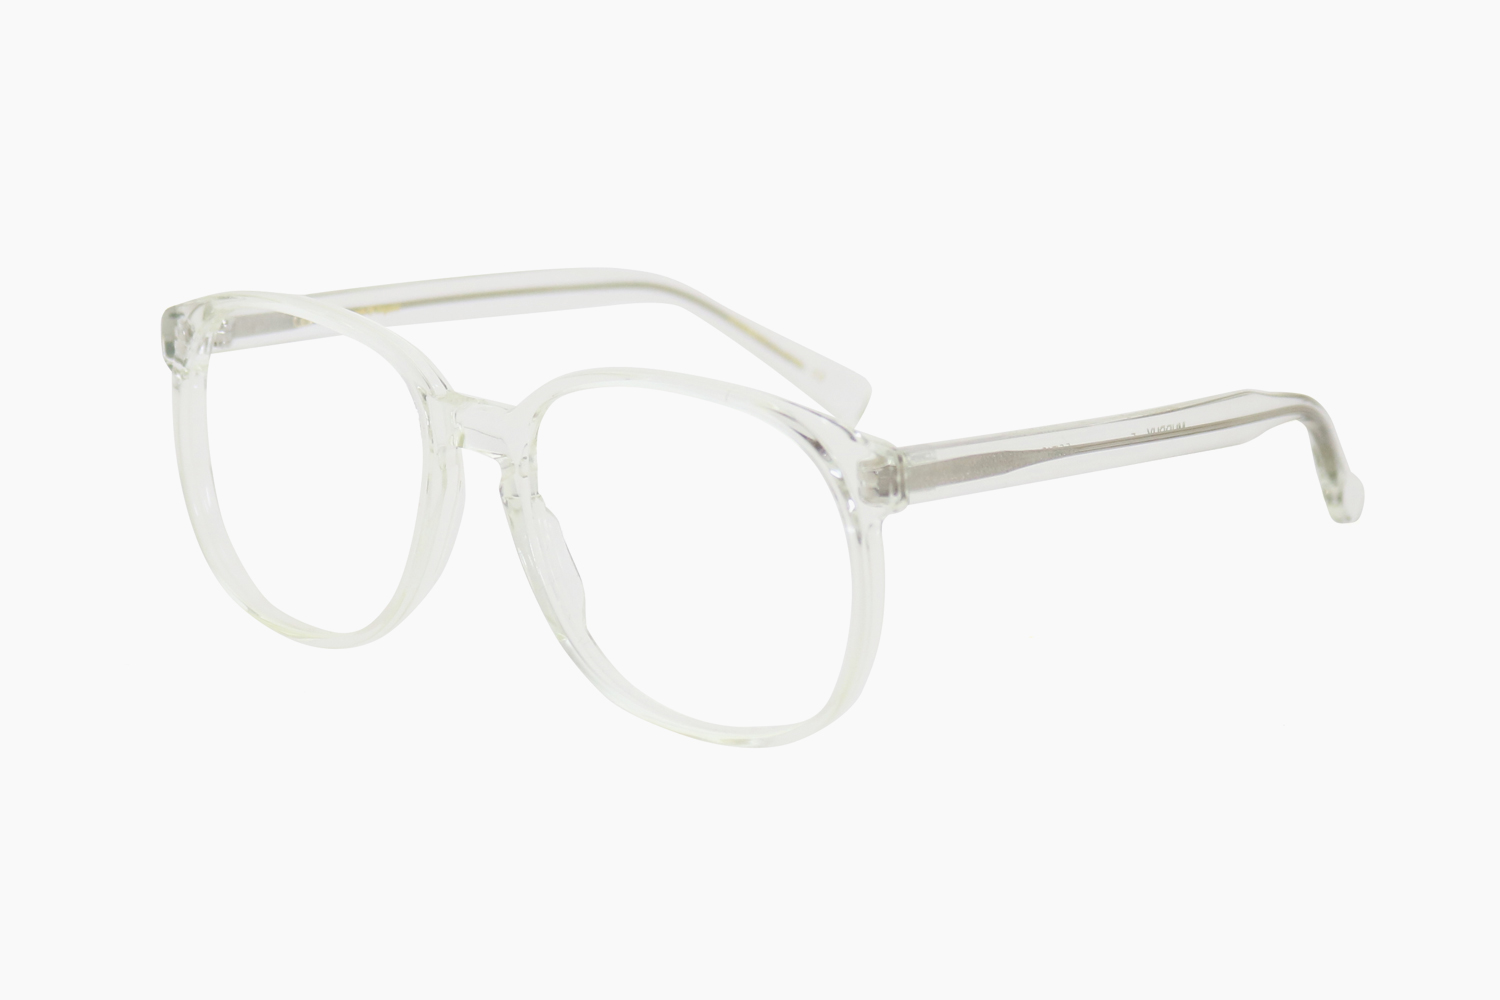 MURPHY E - ICE|OLIVER GOLDSMITH